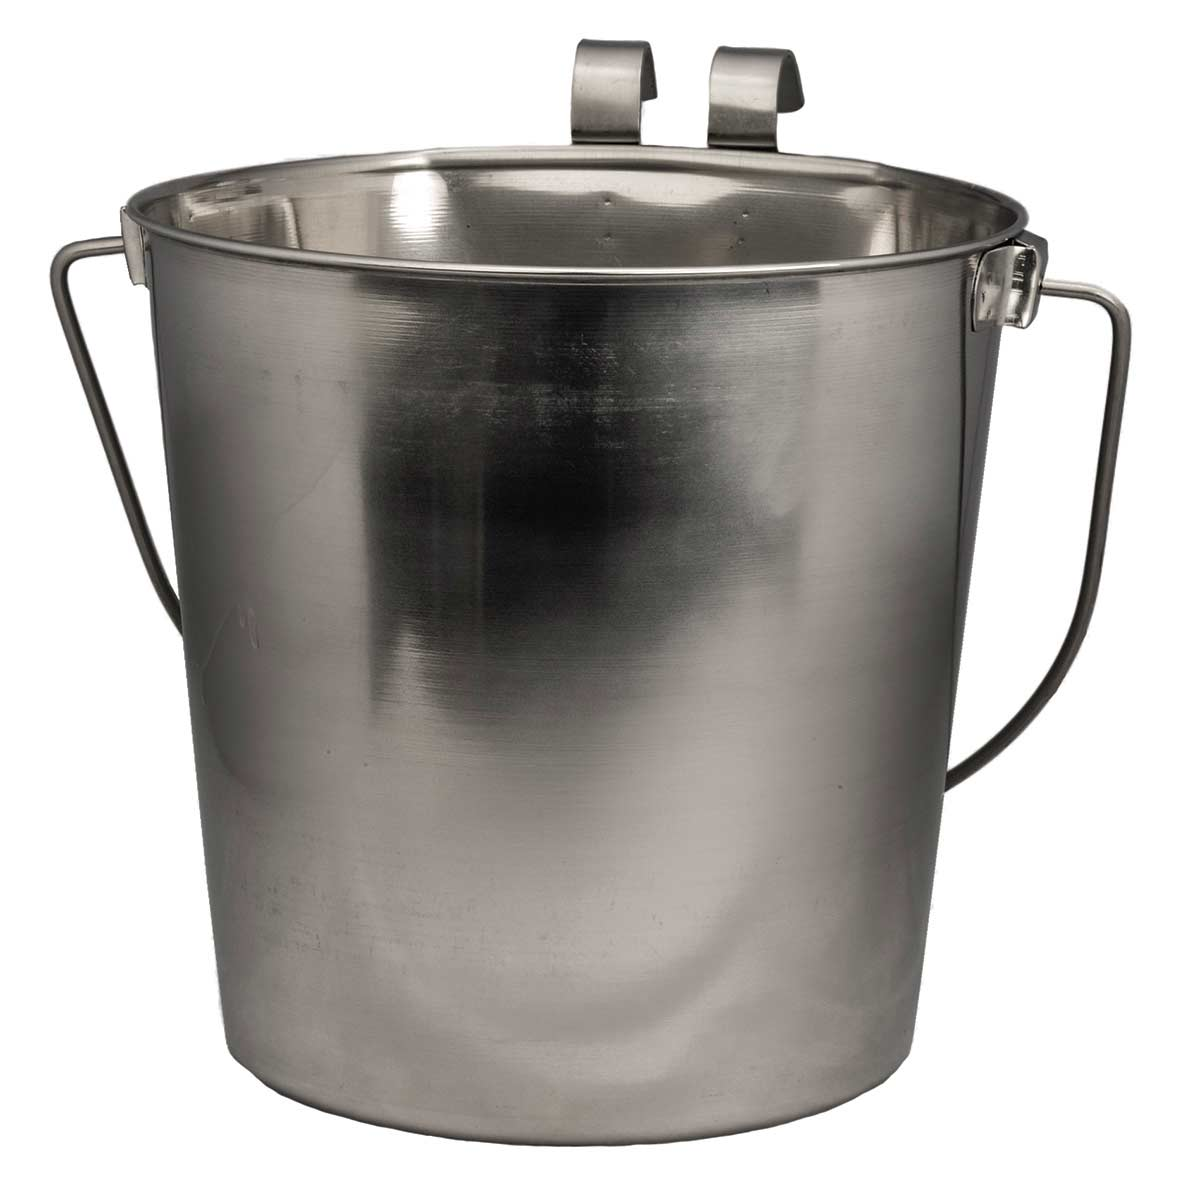 Indipets Flat Side Stainless Steel Pail With Handle 2 Quart